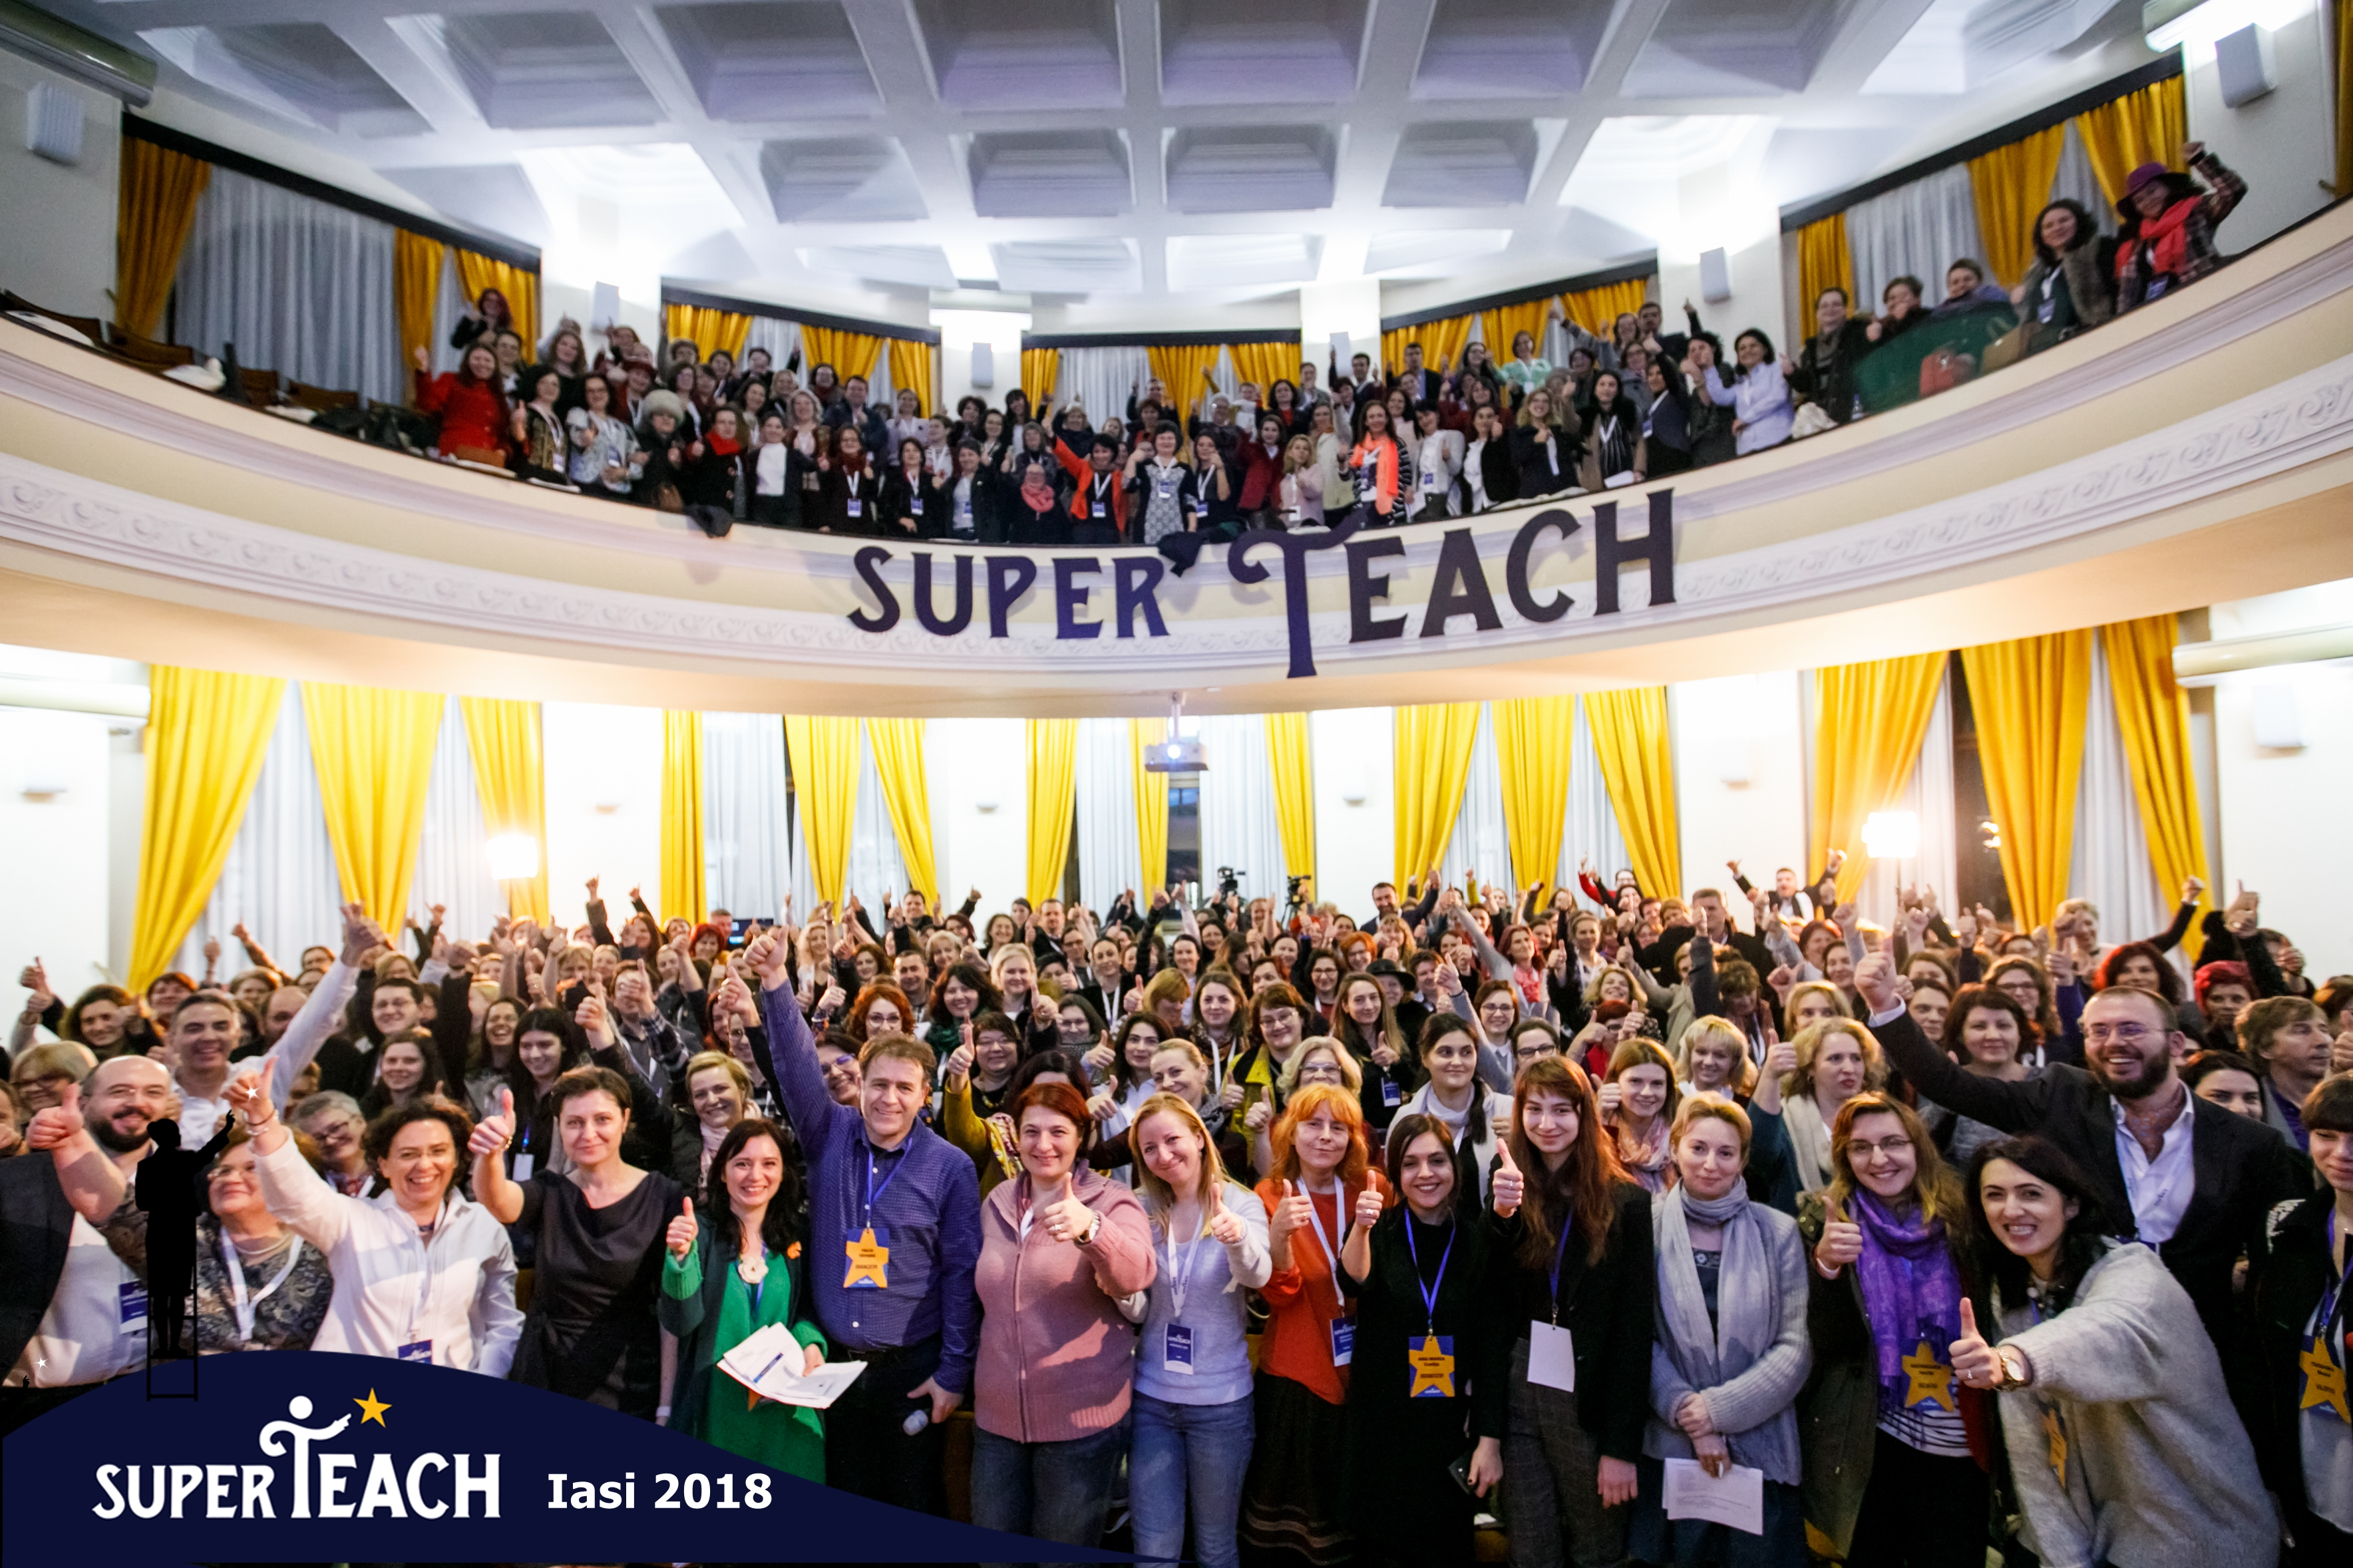 SuperTeach Iasi 2018